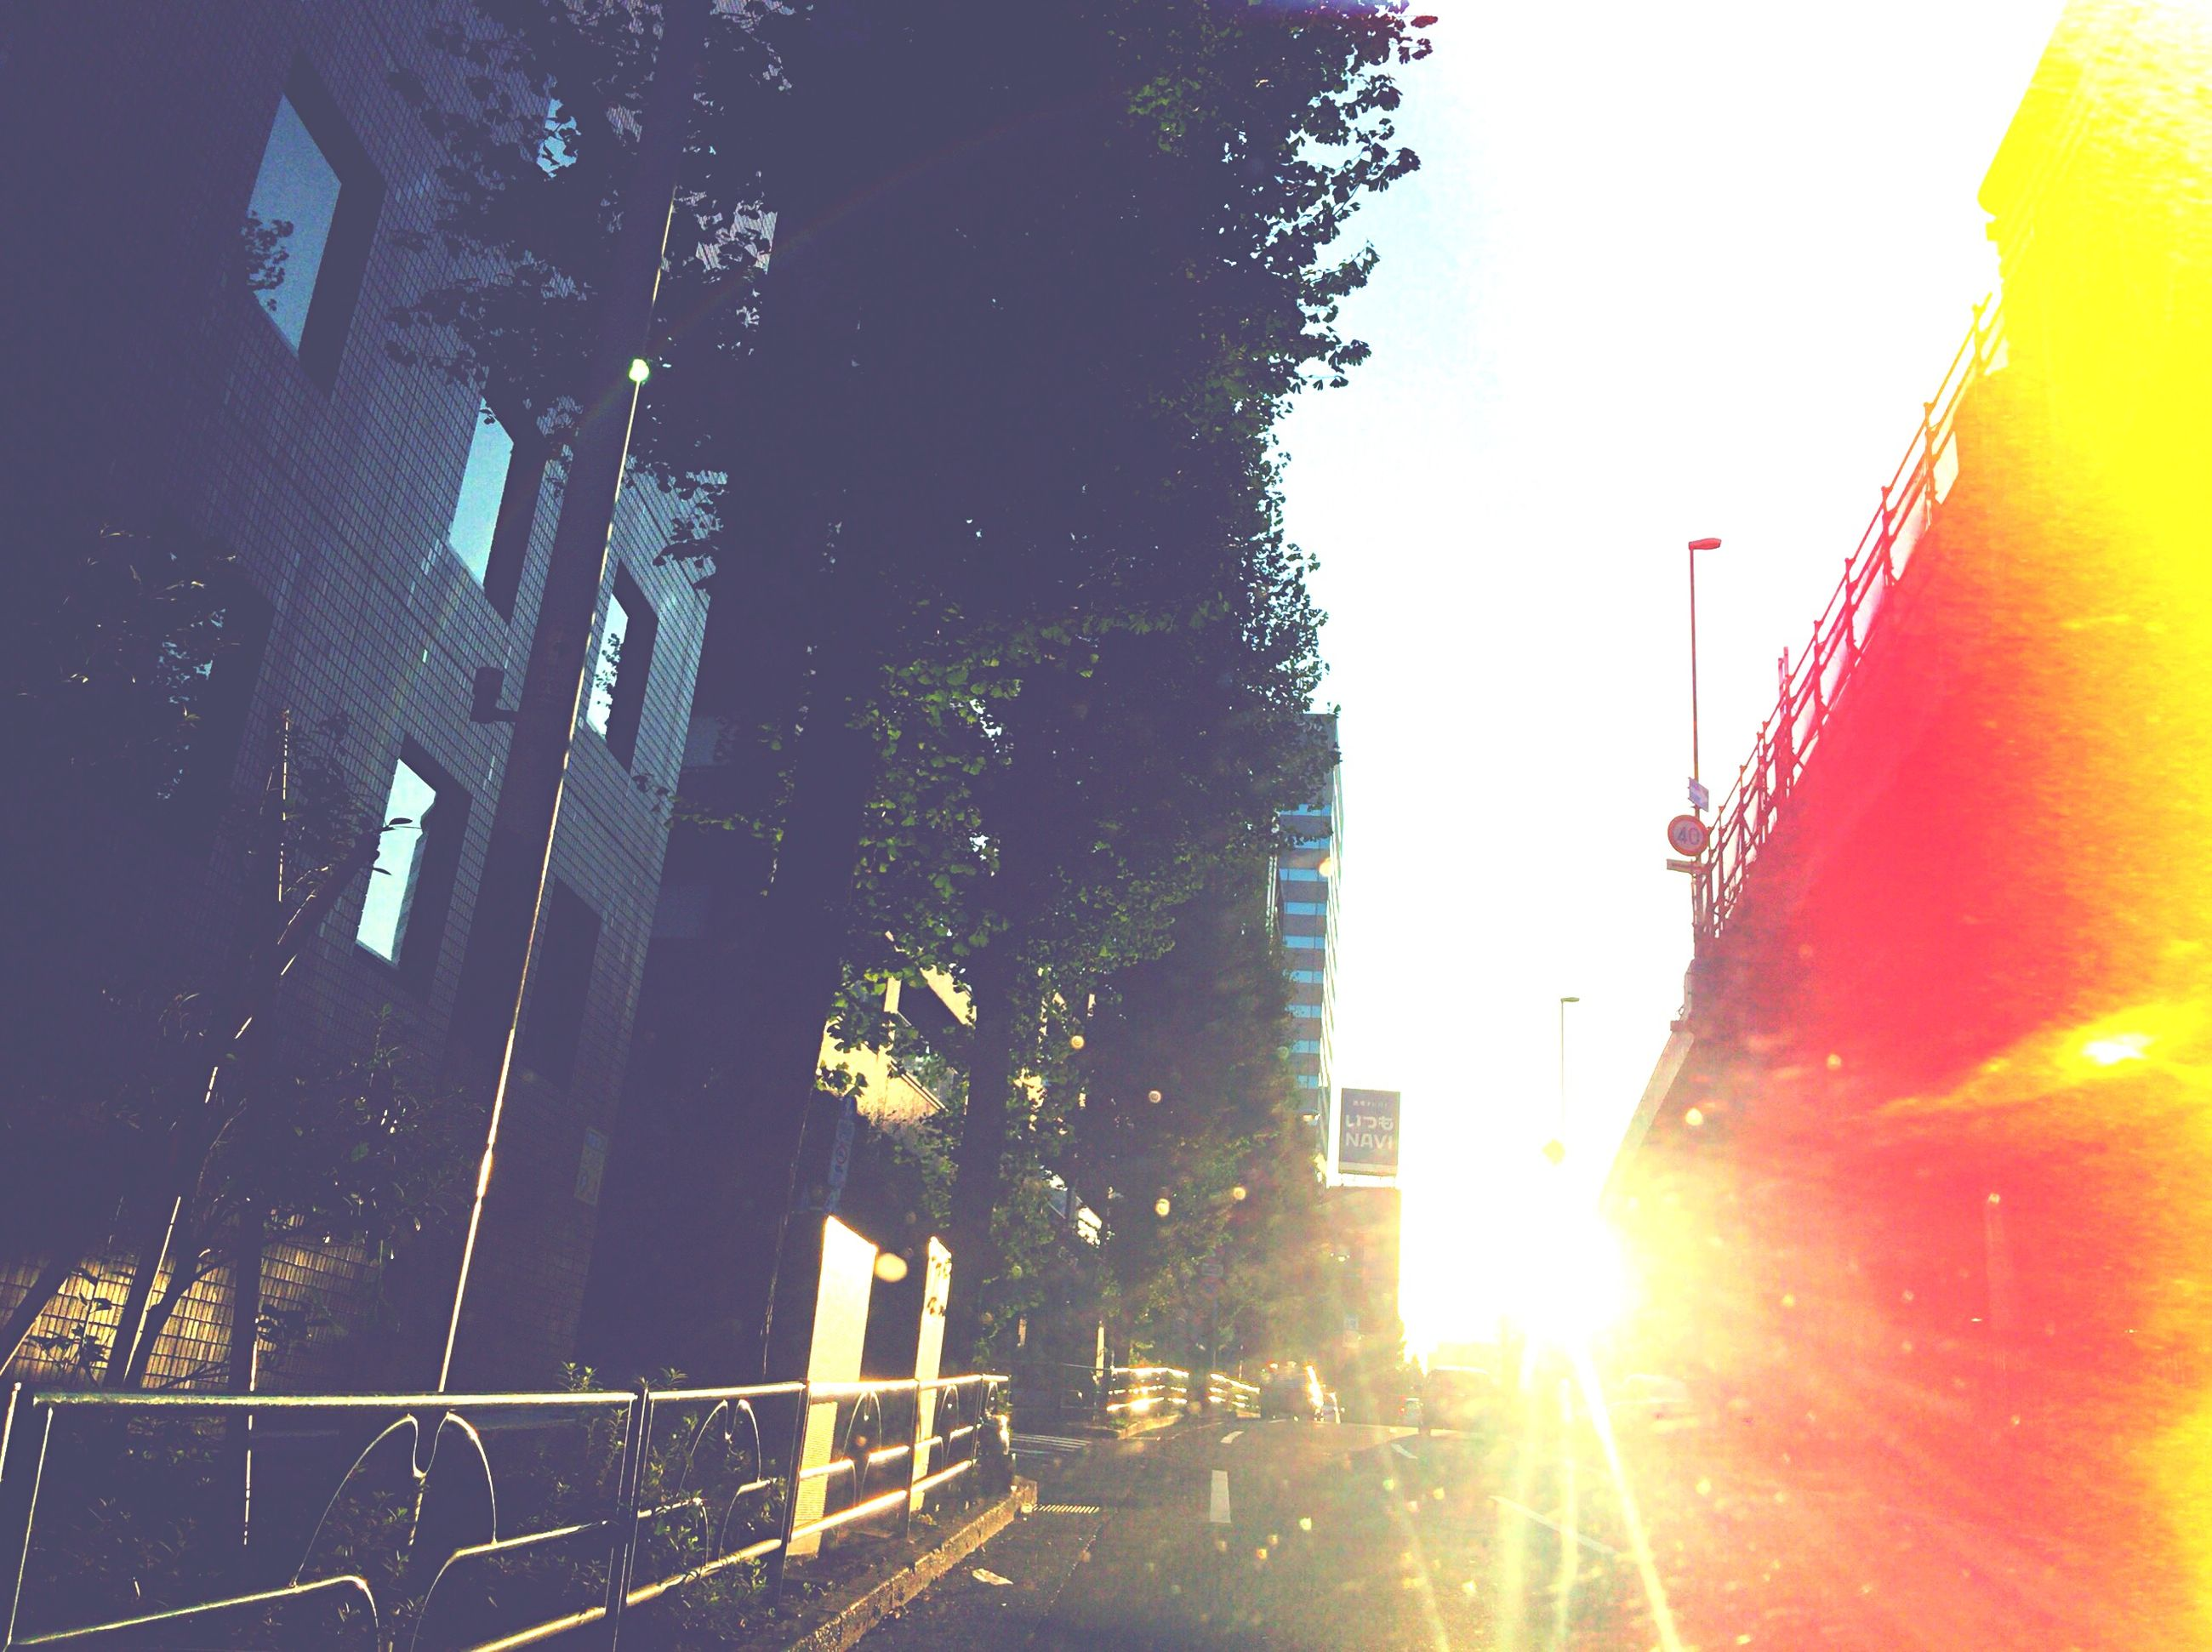 built structure, architecture, building exterior, sun, sunlight, clear sky, lens flare, sunbeam, low angle view, street light, sunset, sky, city, railing, outdoors, building, no people, transportation, day, construction site